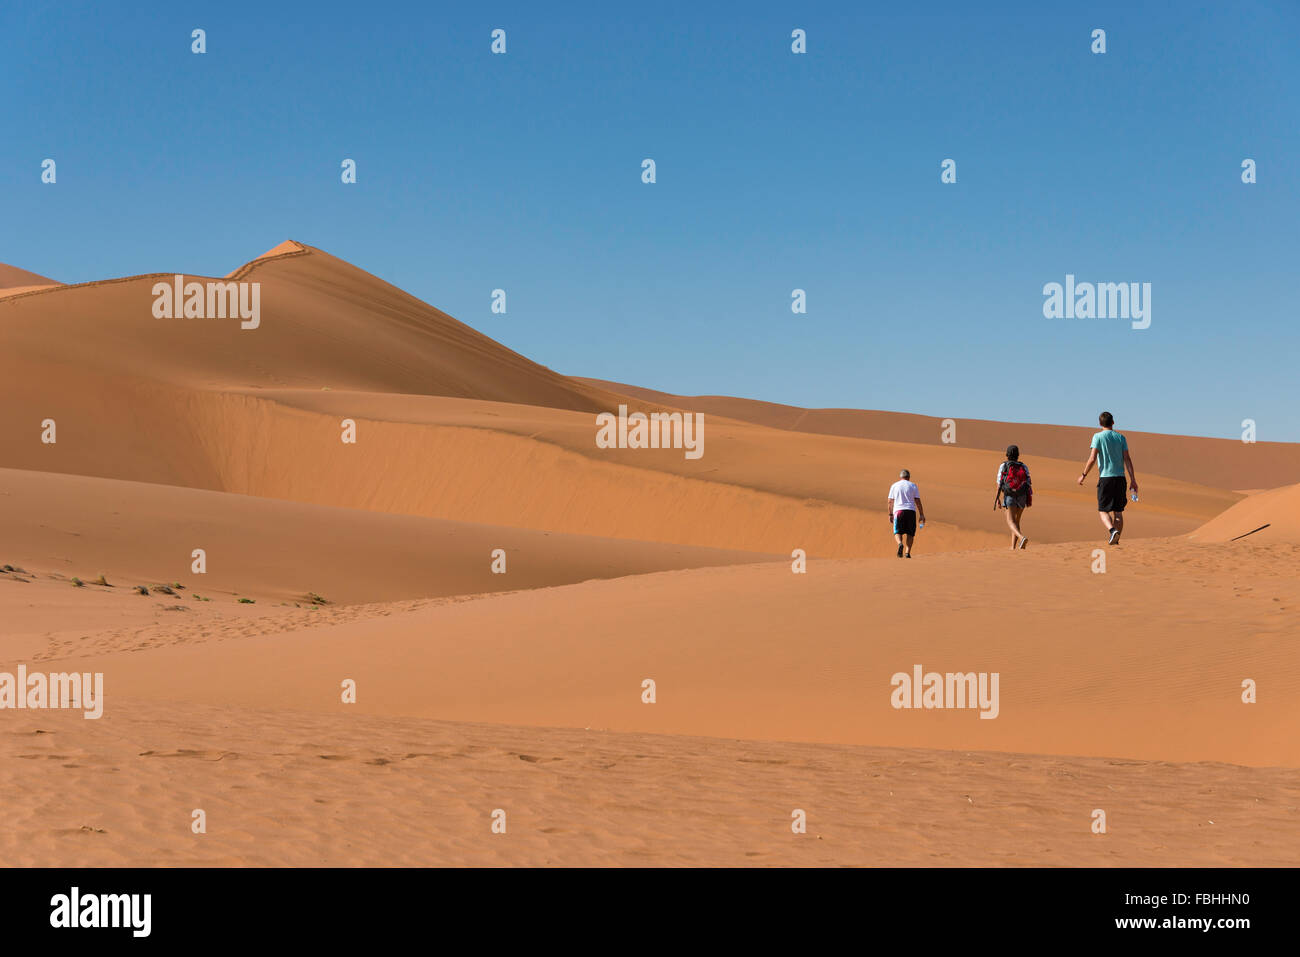 Group walking in desert, Sossusvlei, Namib Desert, Namib-Naukluft Park, Hardap Region, Republic of Namibia - Stock Image